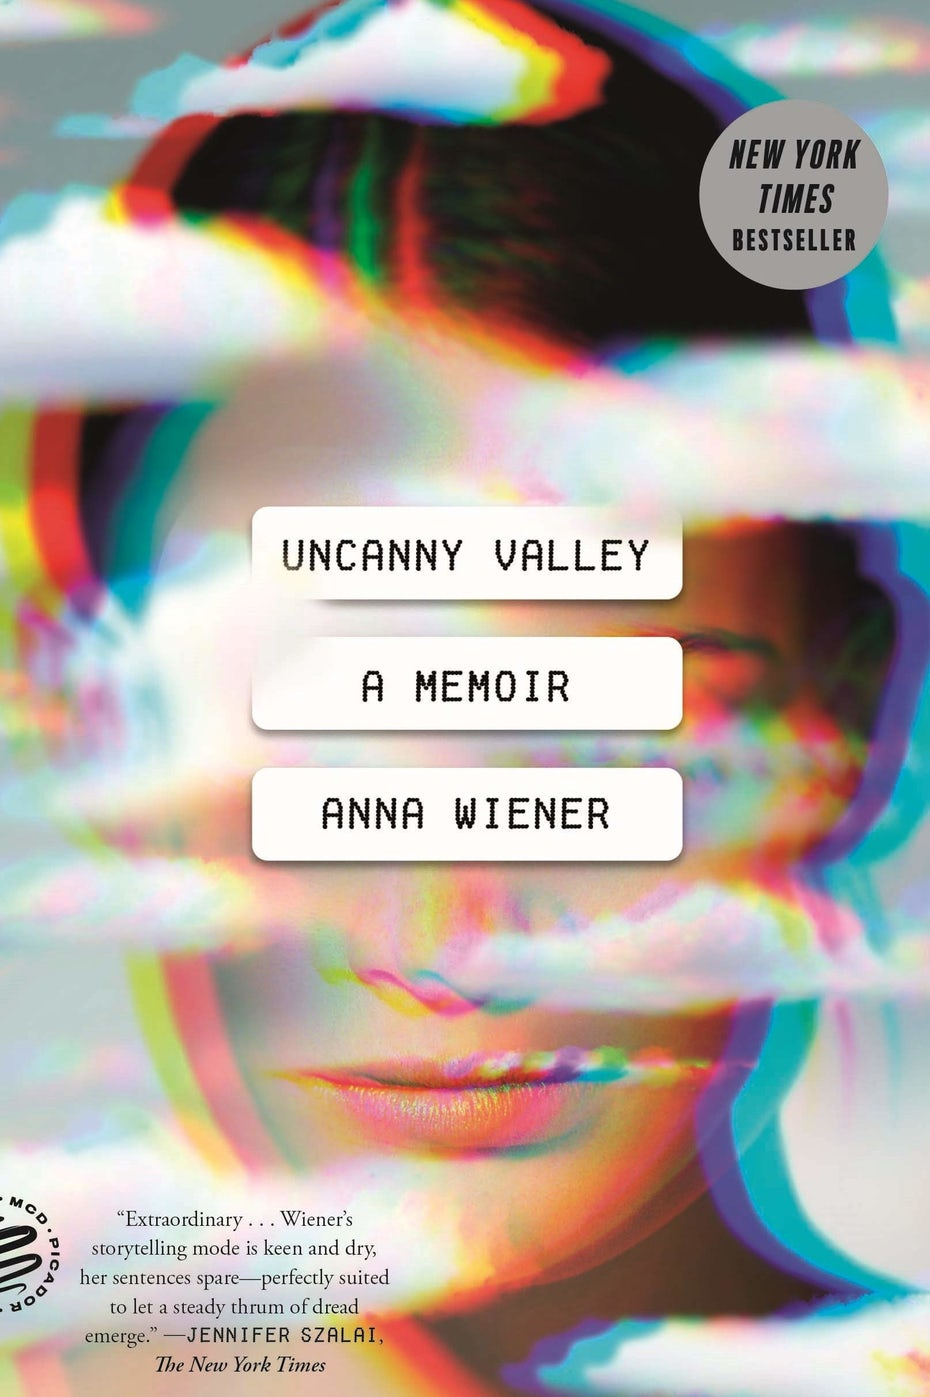 blurry book cover trends example: book cover showing a woman's face in the clouds, partially obscured by text